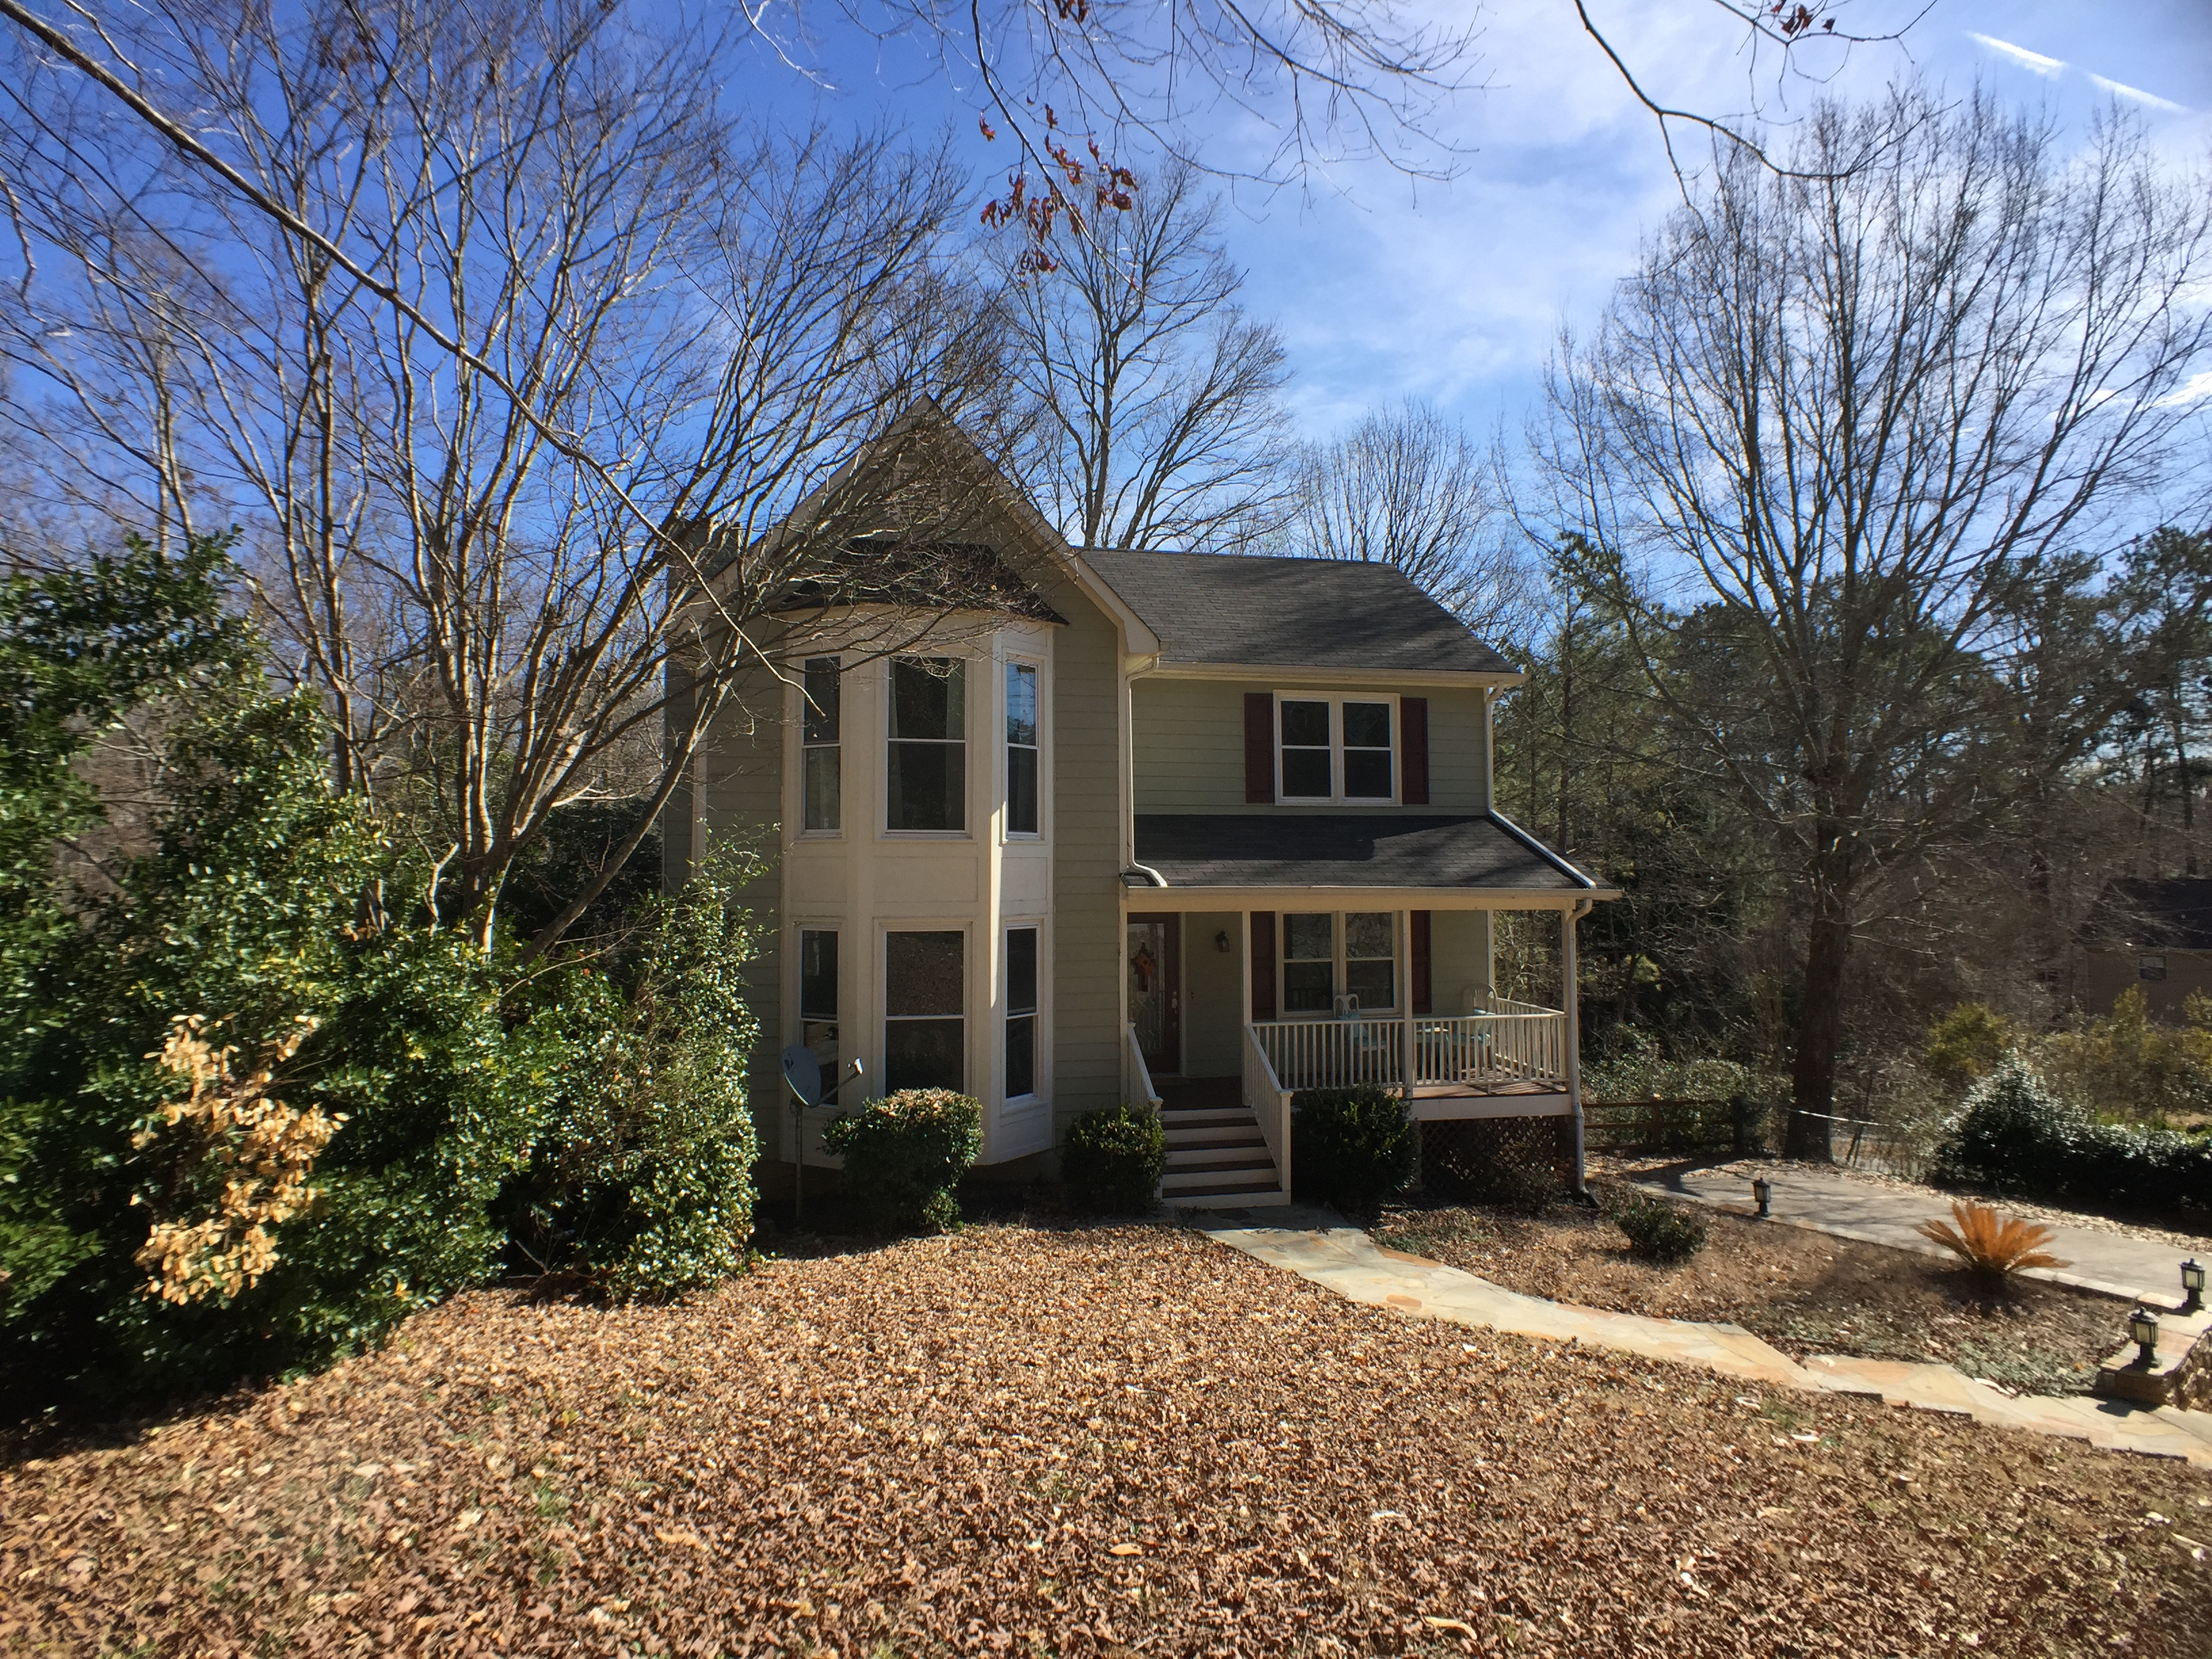 Photo of 137 Aspen Ct, Woodstock, GA, 30188